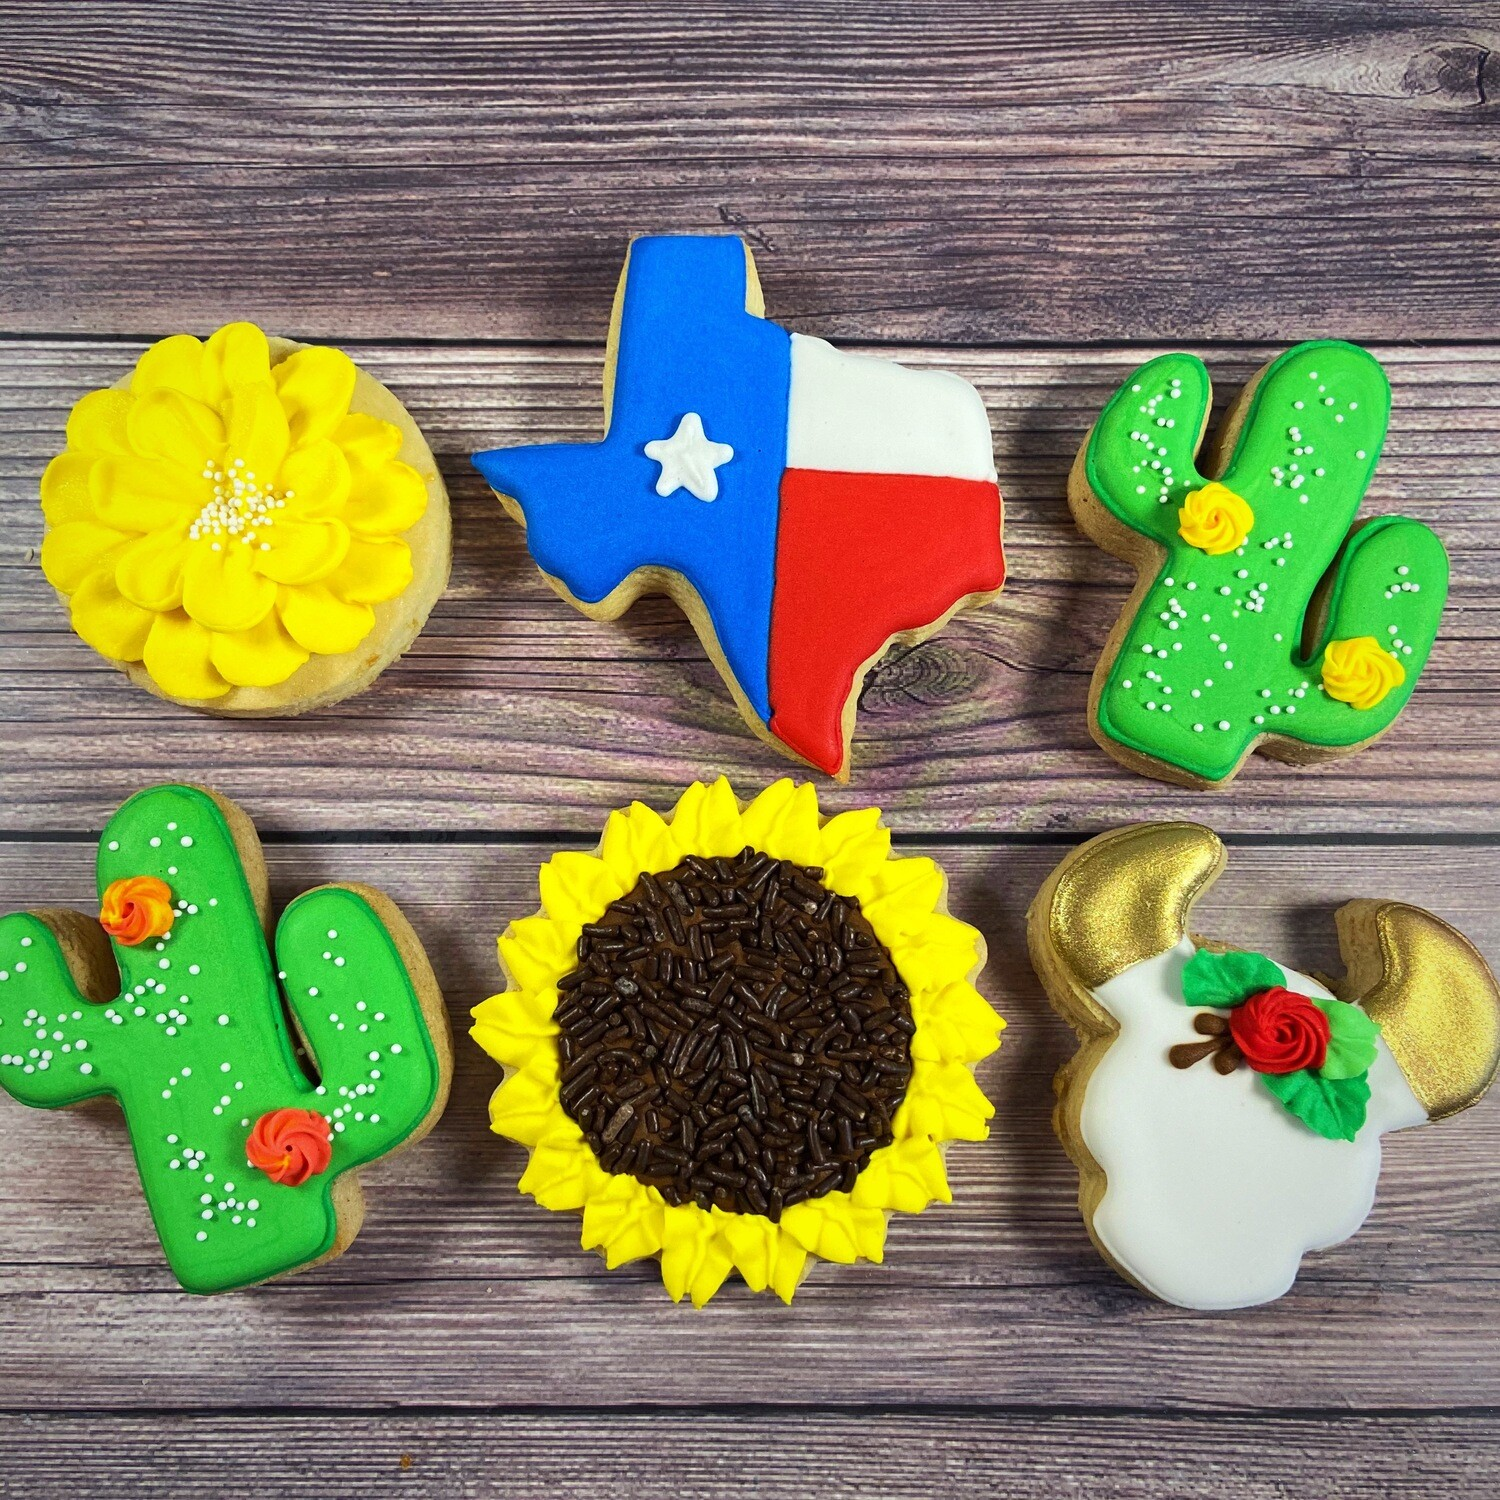 'TEXAS Decorating Workshop - MONDAY, AUGUST 2nd at 6 p.m. (THE COOKIE DECORATING STUDIO)